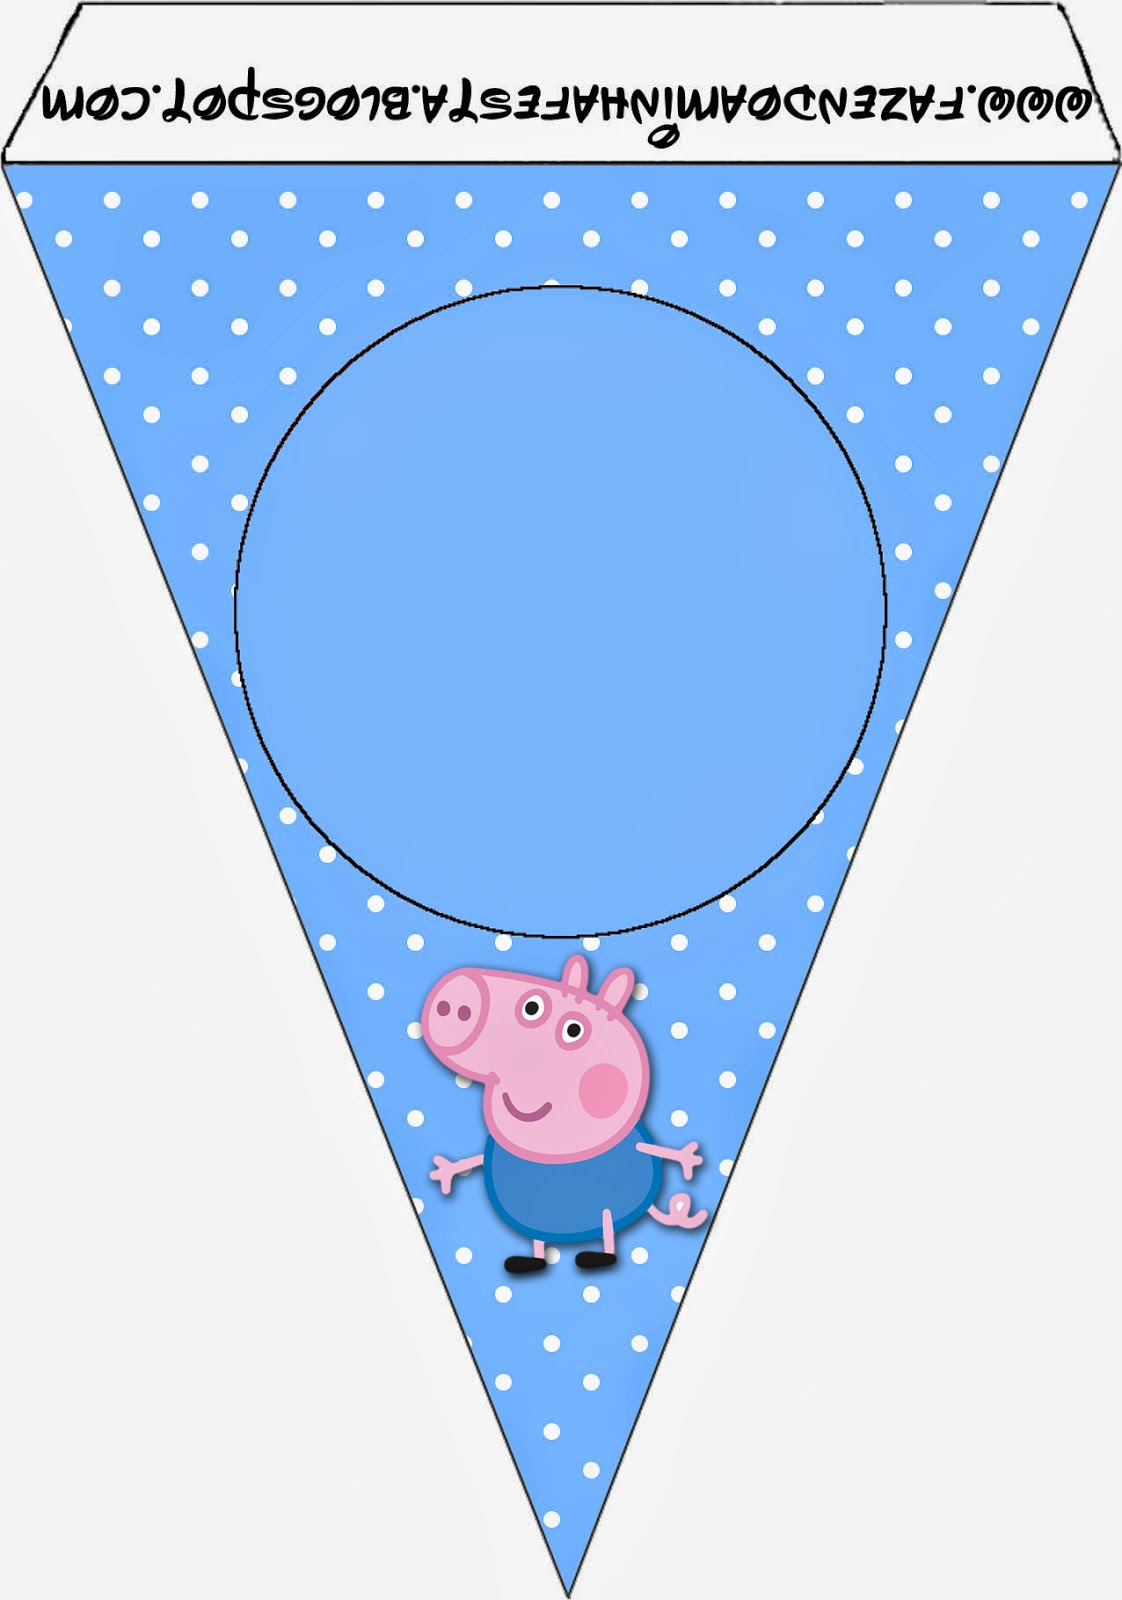 Pig Free Party Printables and Images. | Is it for PARTIES? Is it FREE ...